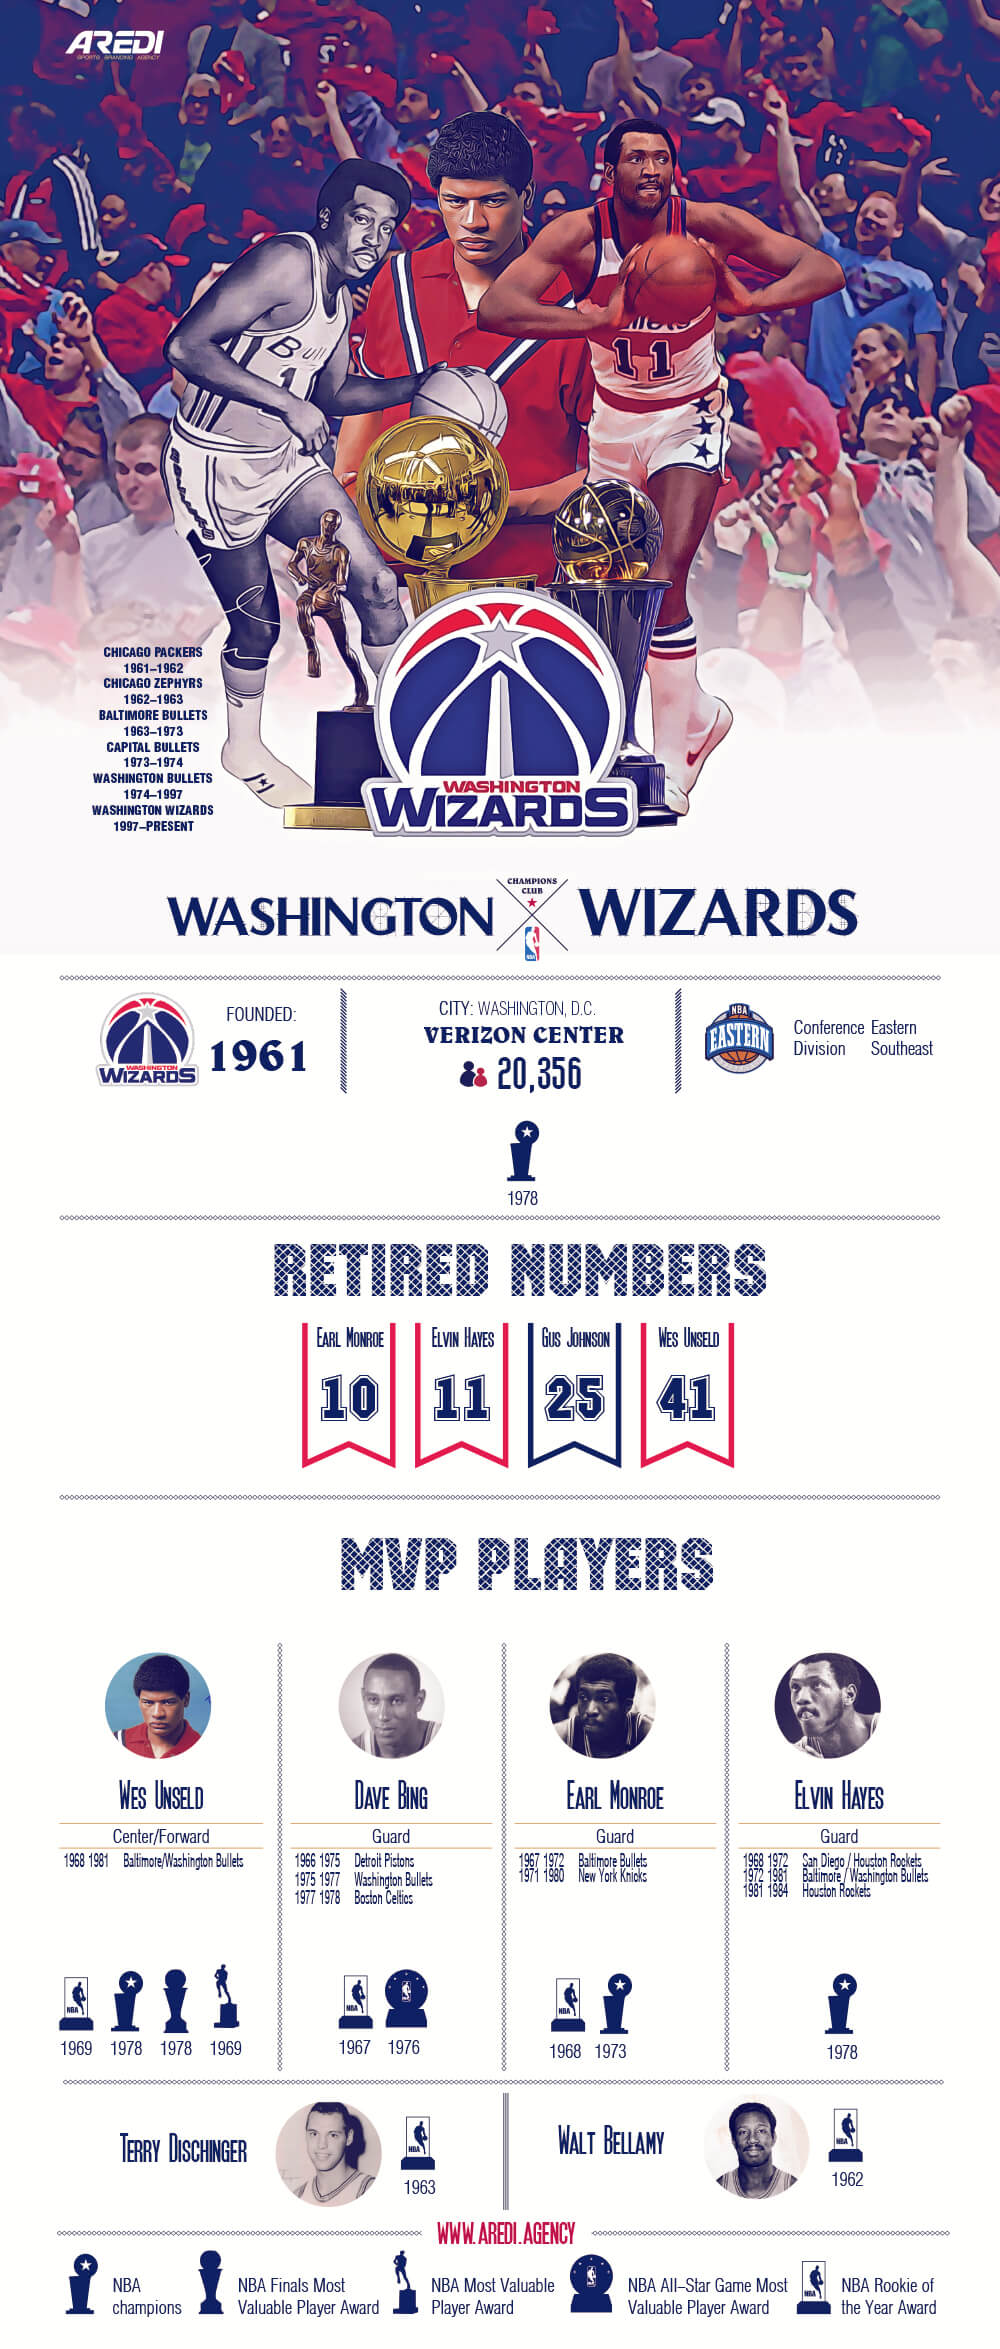 The best players in the history of the Washington Wizards